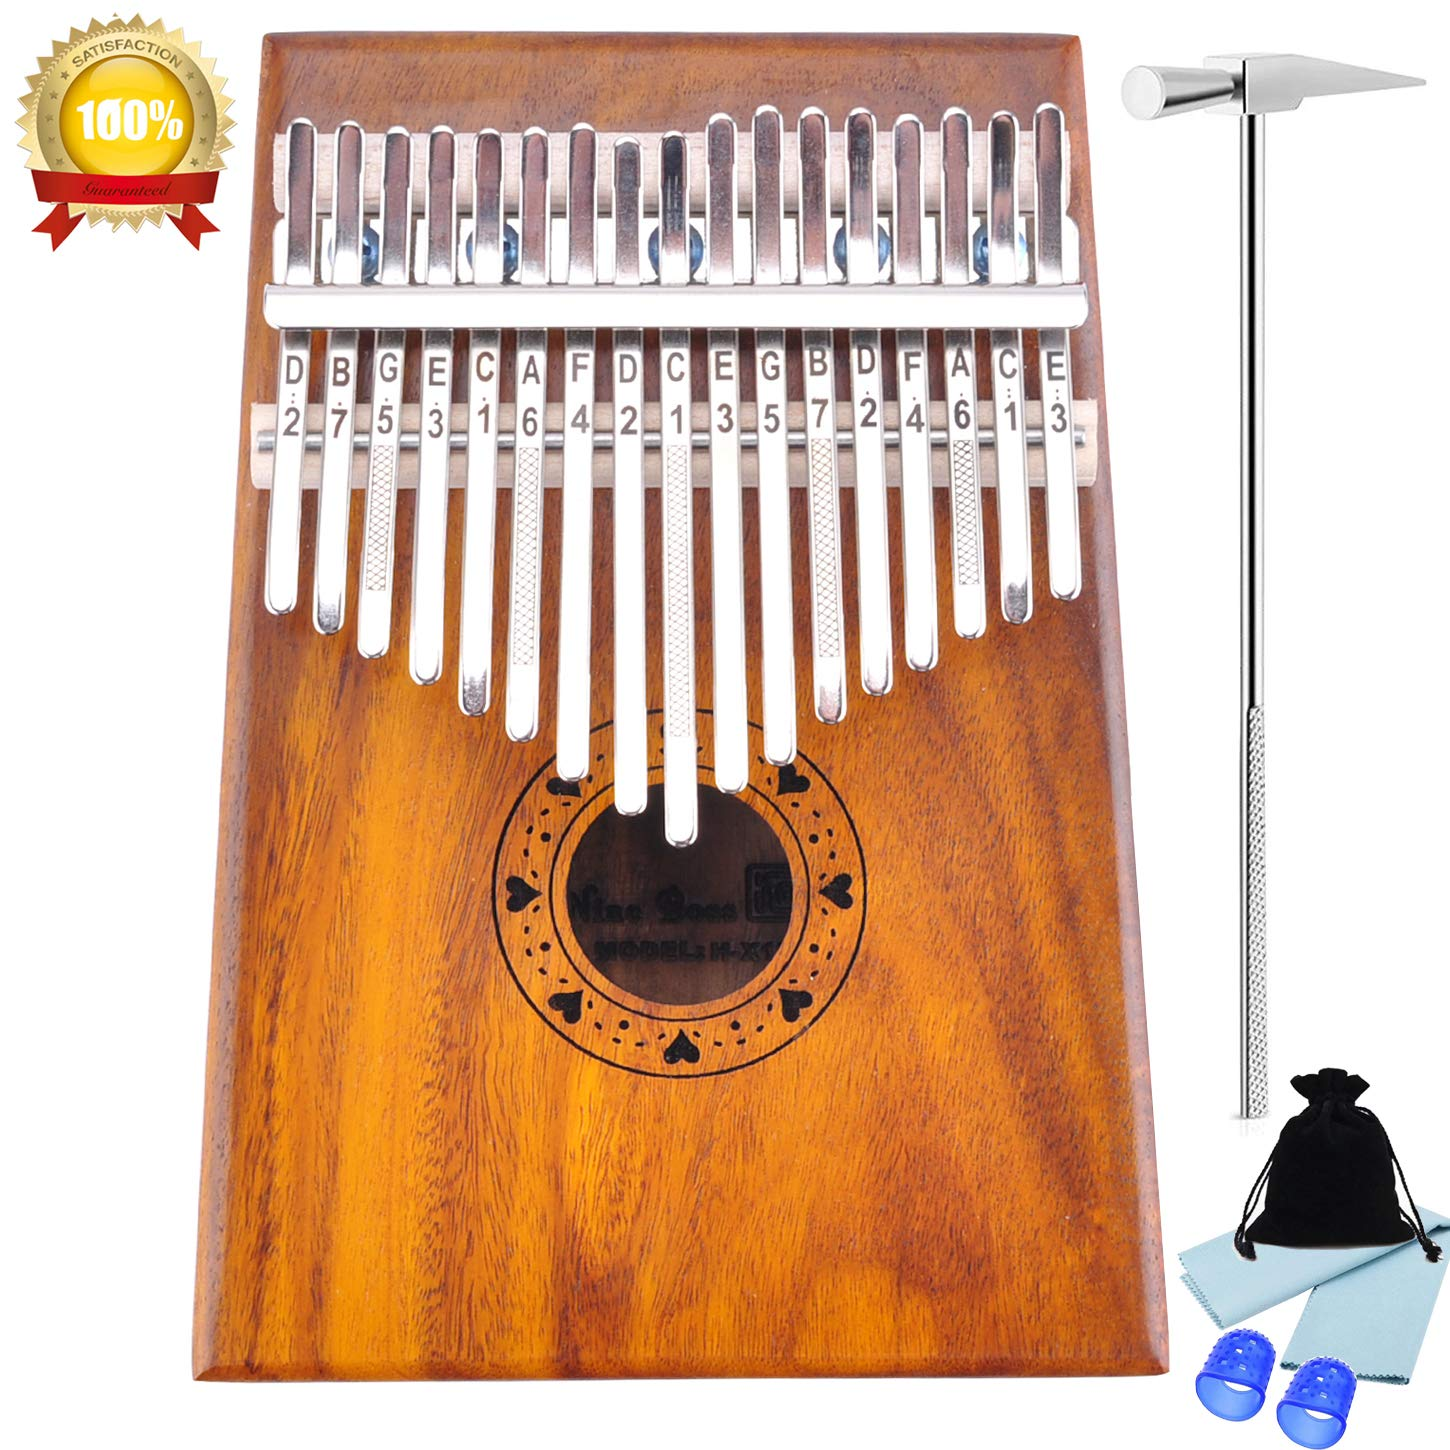 Kalimba 17 Keys Thumb Piano with Tune Hammer Fingertip Protectors and Polishing Cloth,Portable Music Instrument Solid KOA Wood. (KOA Wood-17 keys) WOGOD 4336351455